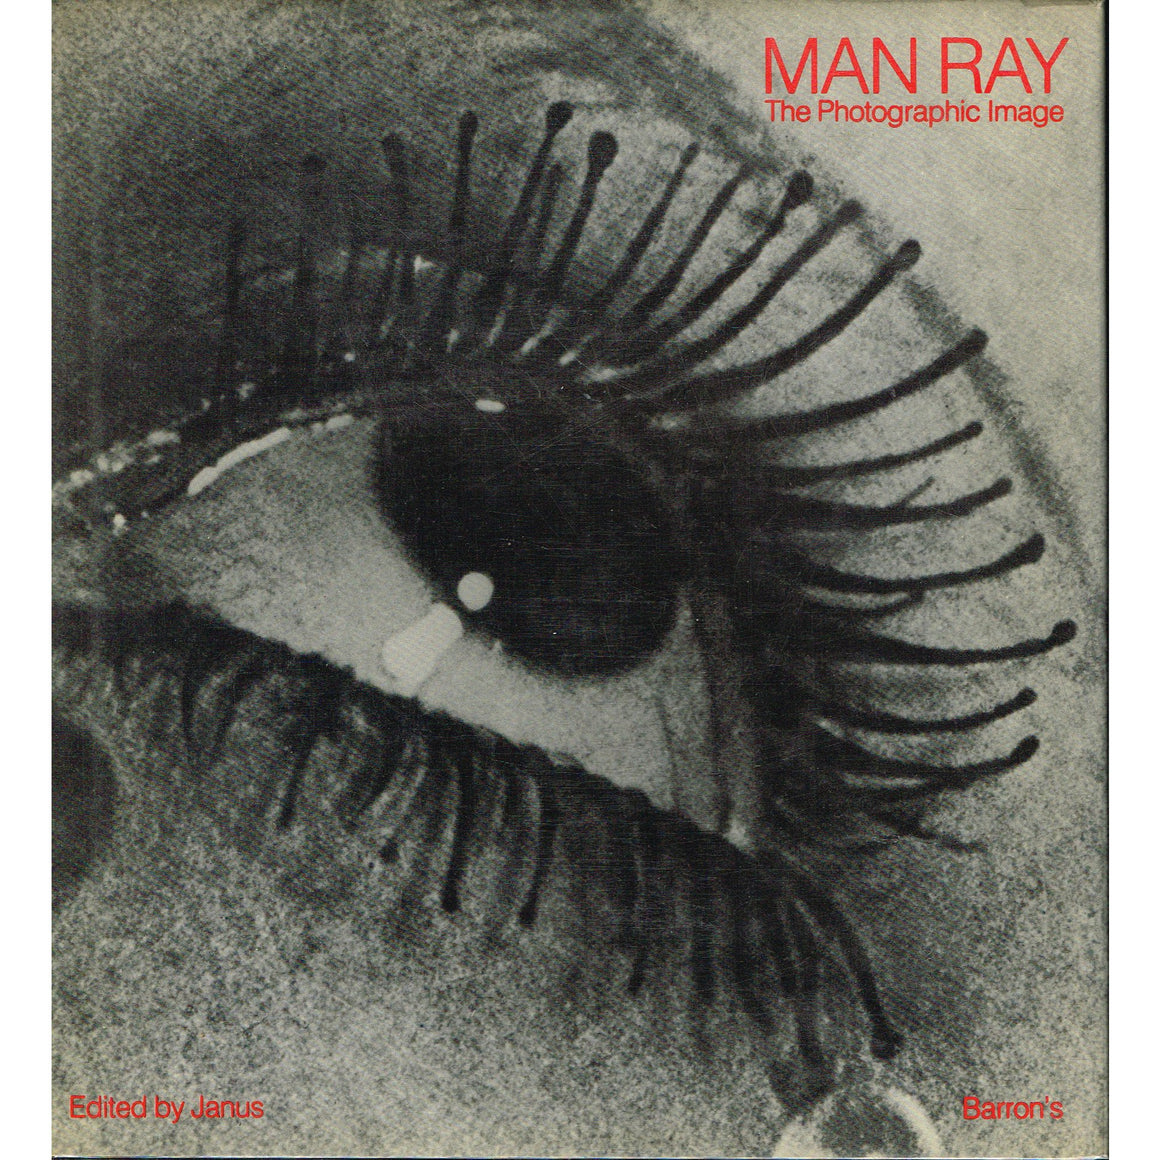 Man Ray: The Photographic Image